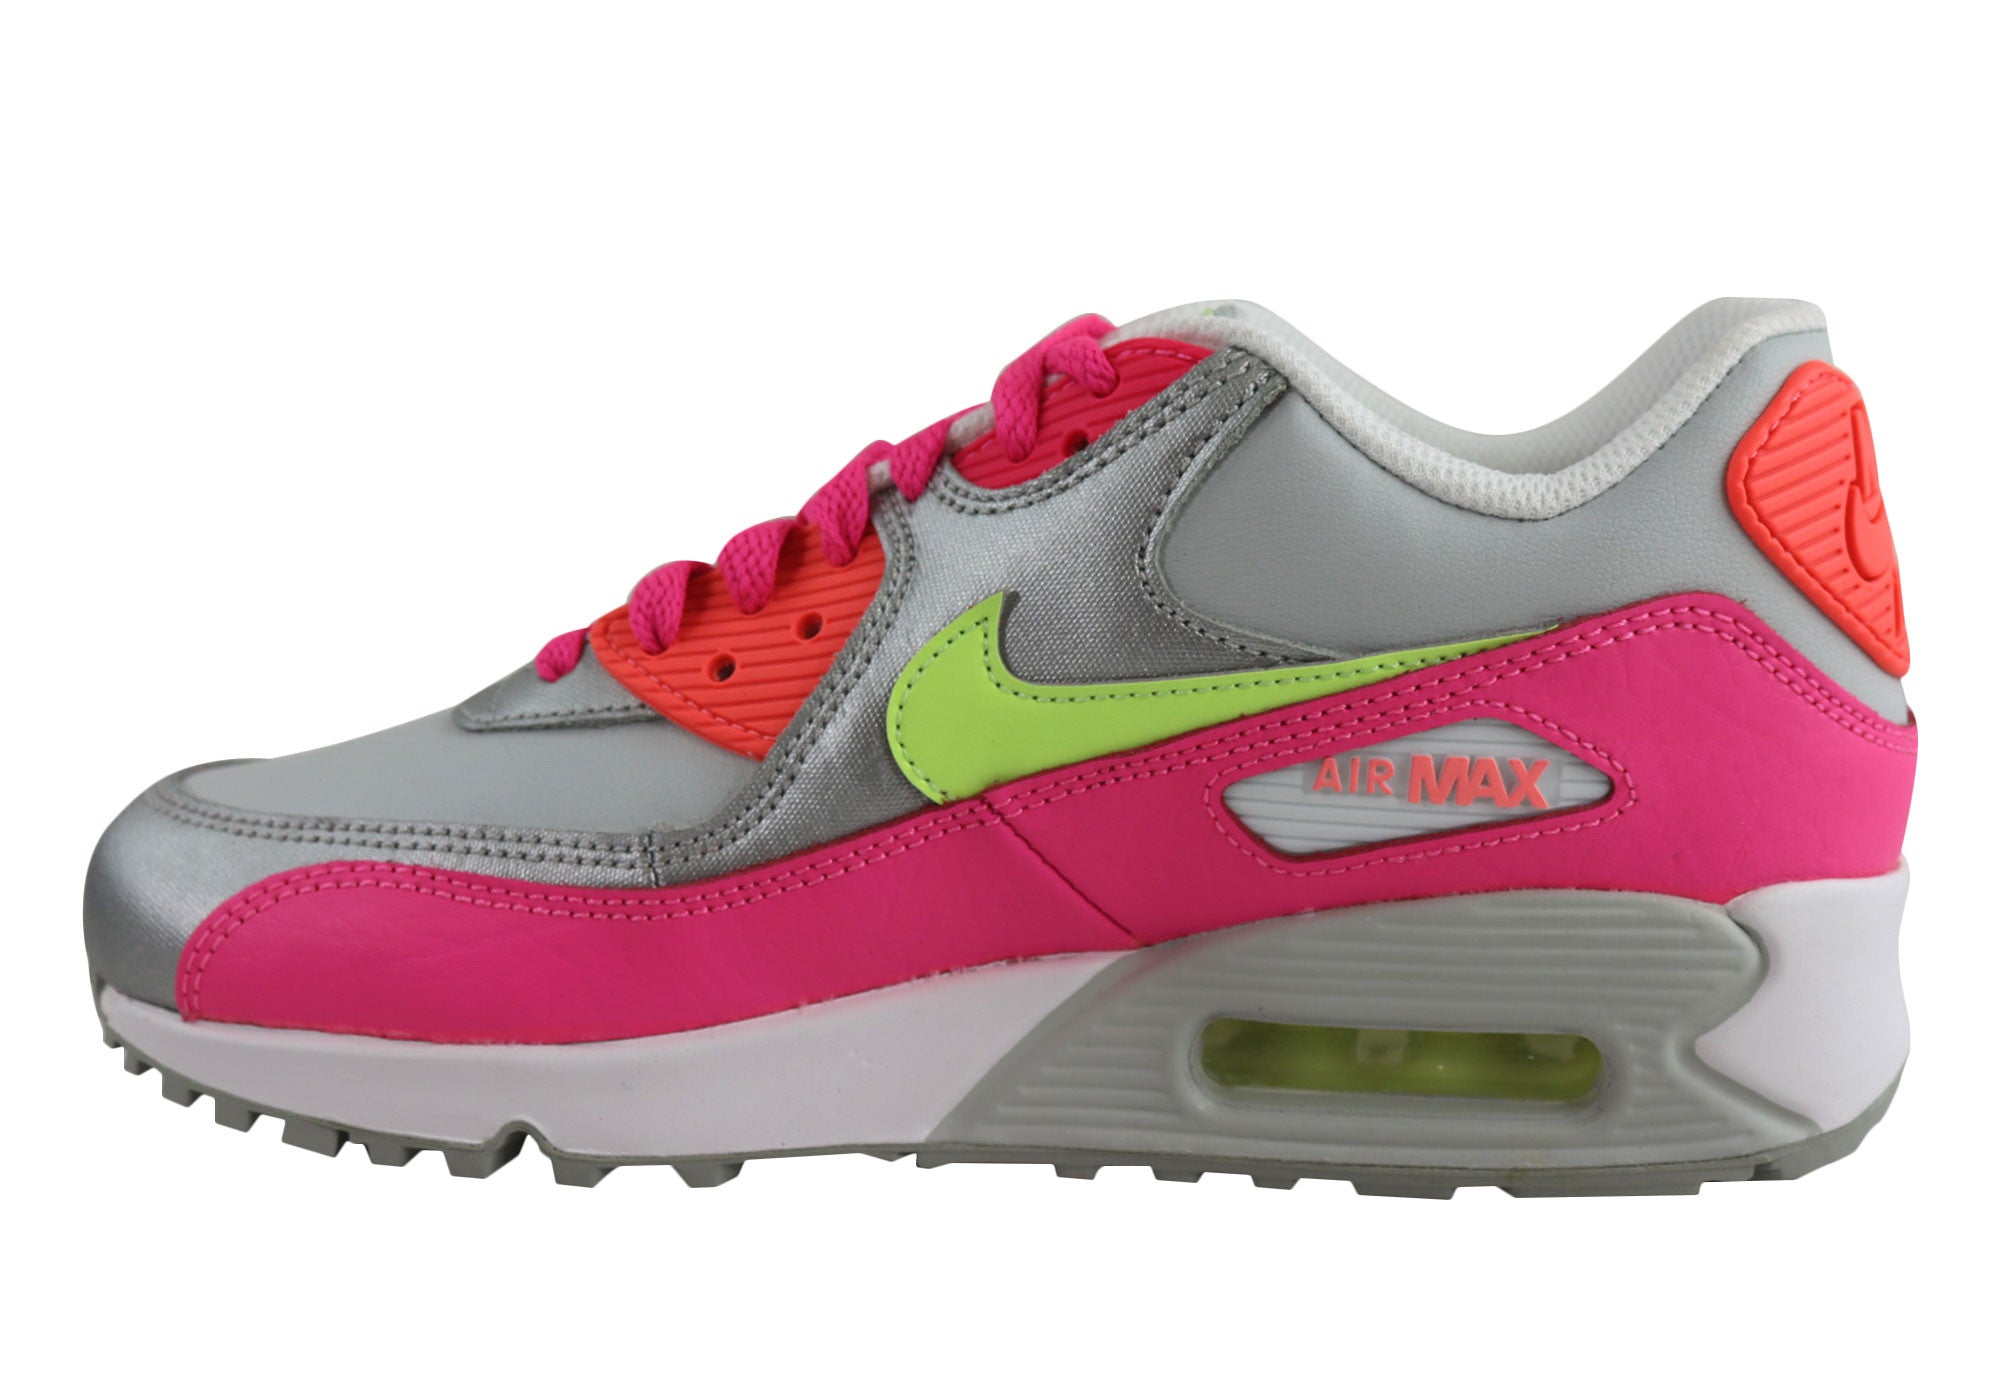 hot sale online e23db b77c8 Home Nike Air Max 90 Ltr (GS) Older Kids Girls Sport Shoes. White Pink   White Pink ...